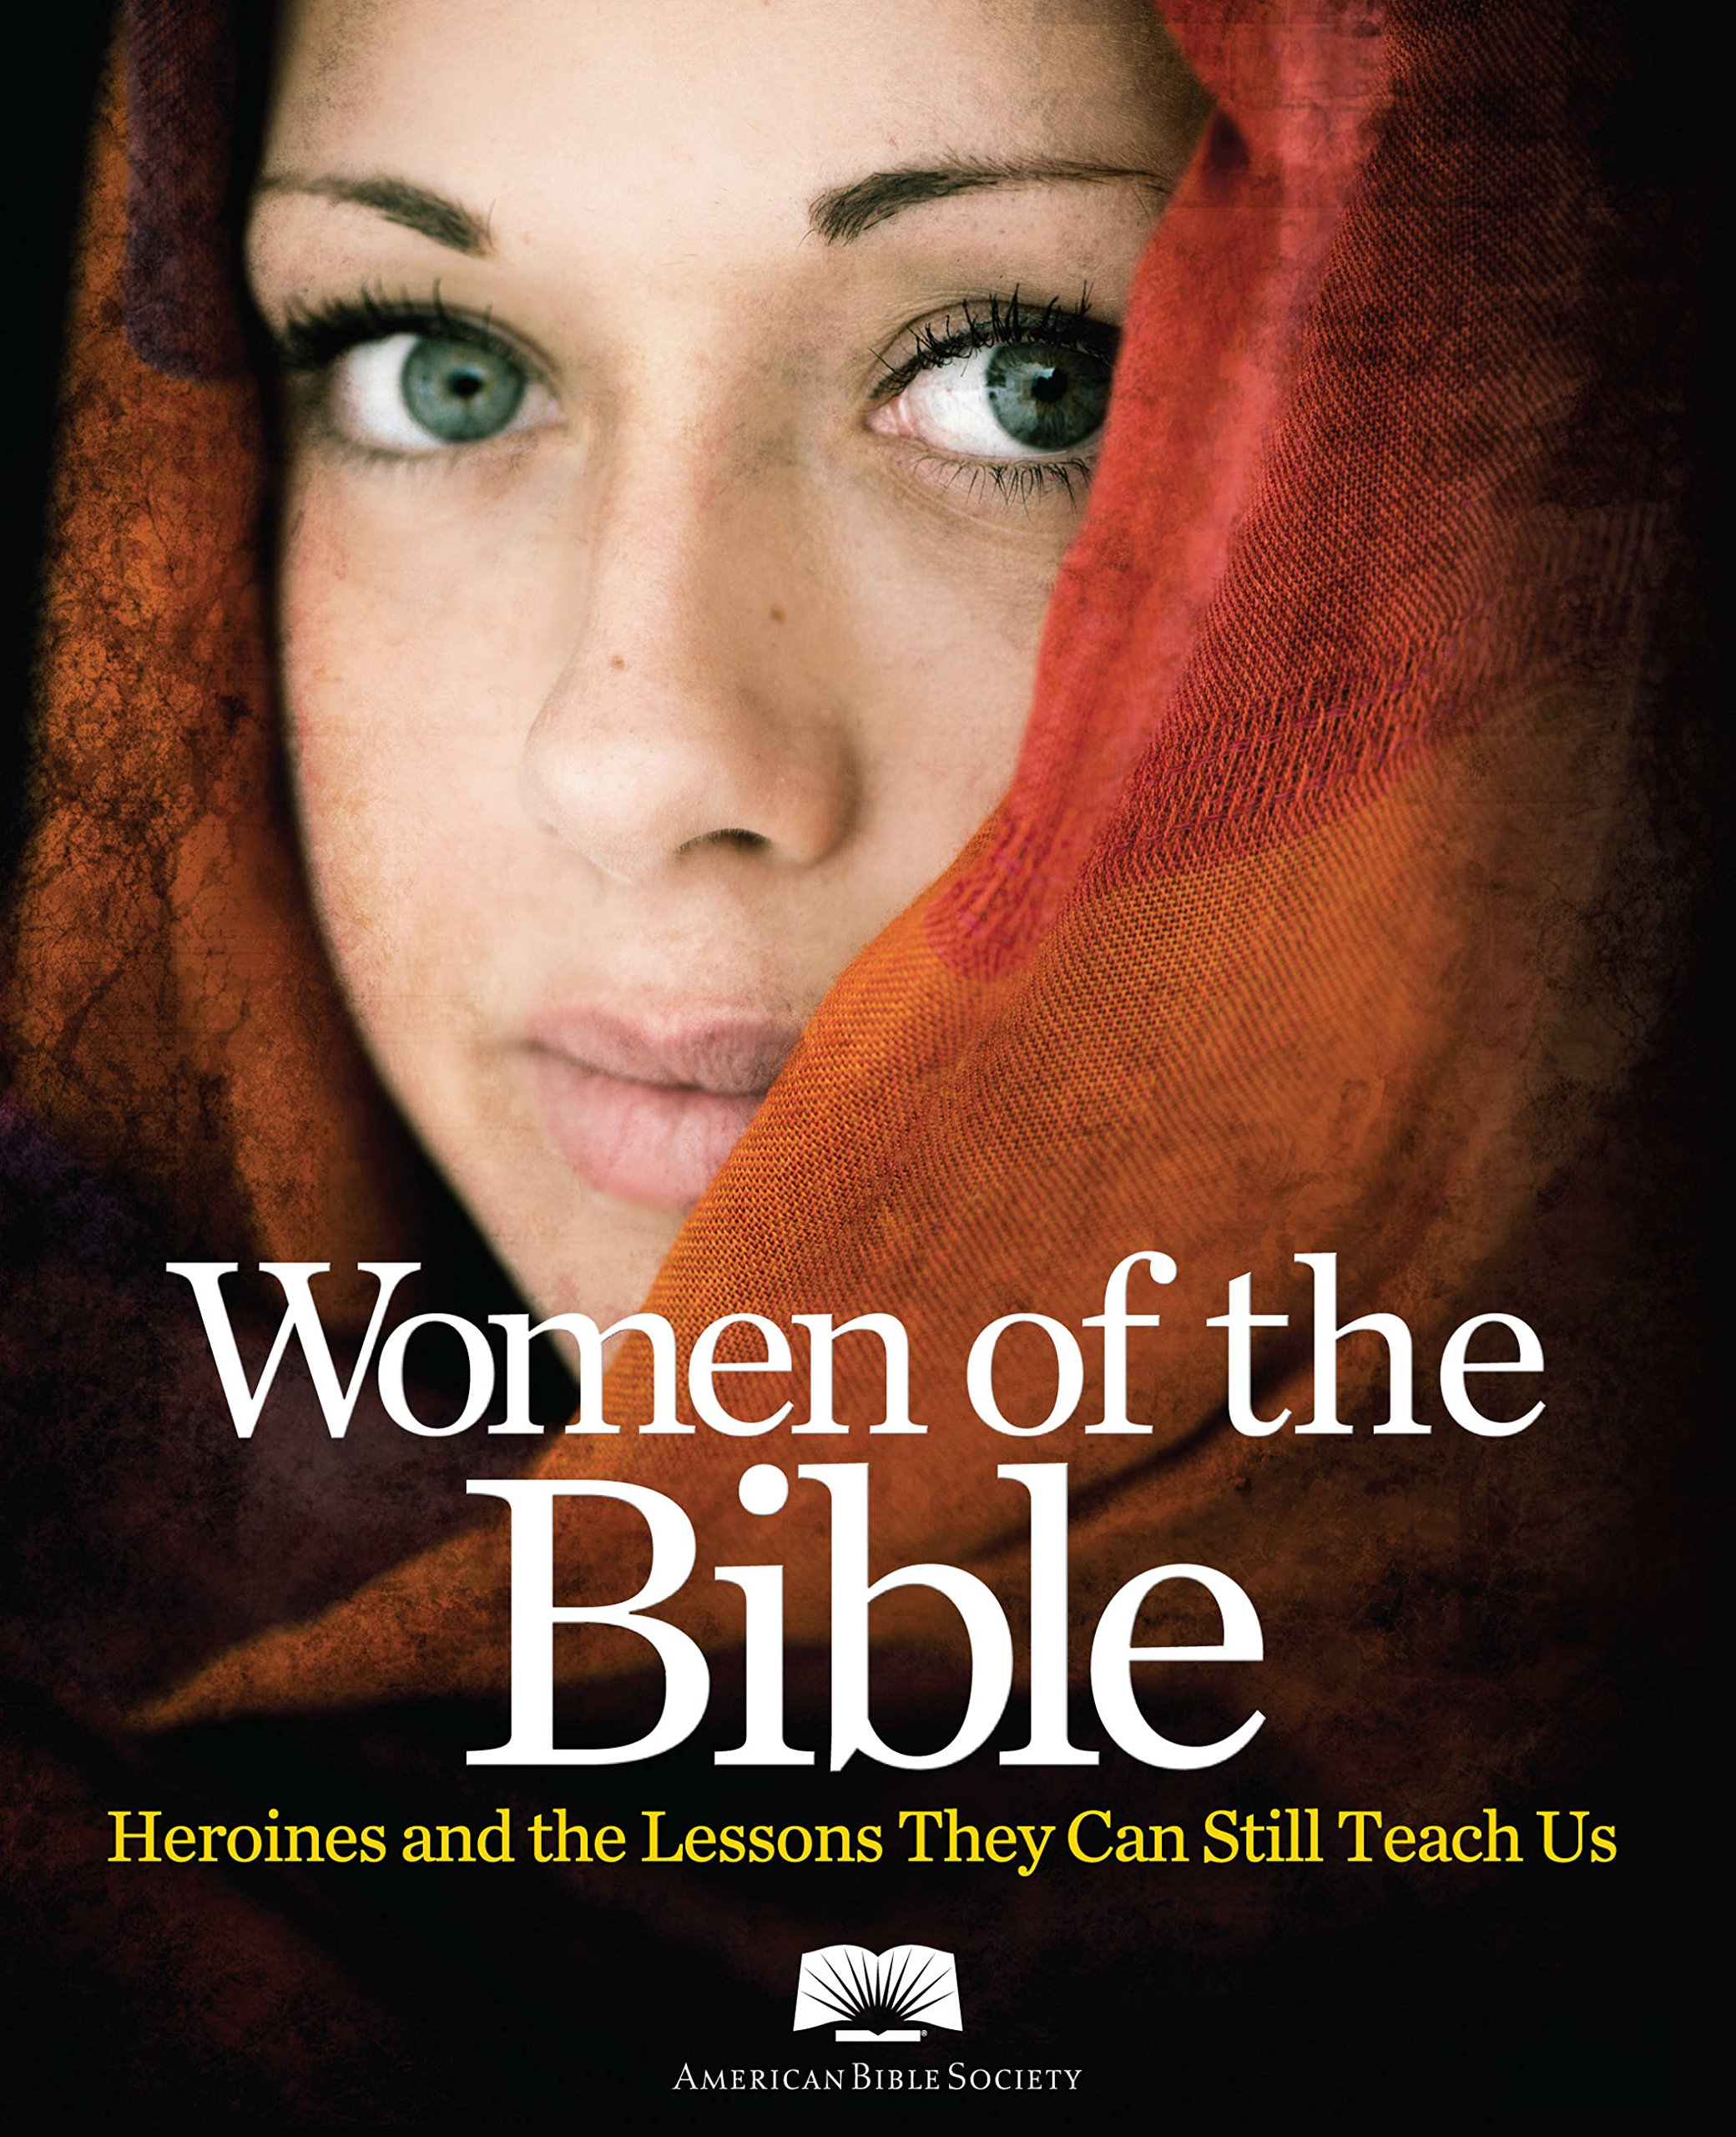 American Bible Society Women of the Bible: Heroines and the Lessons